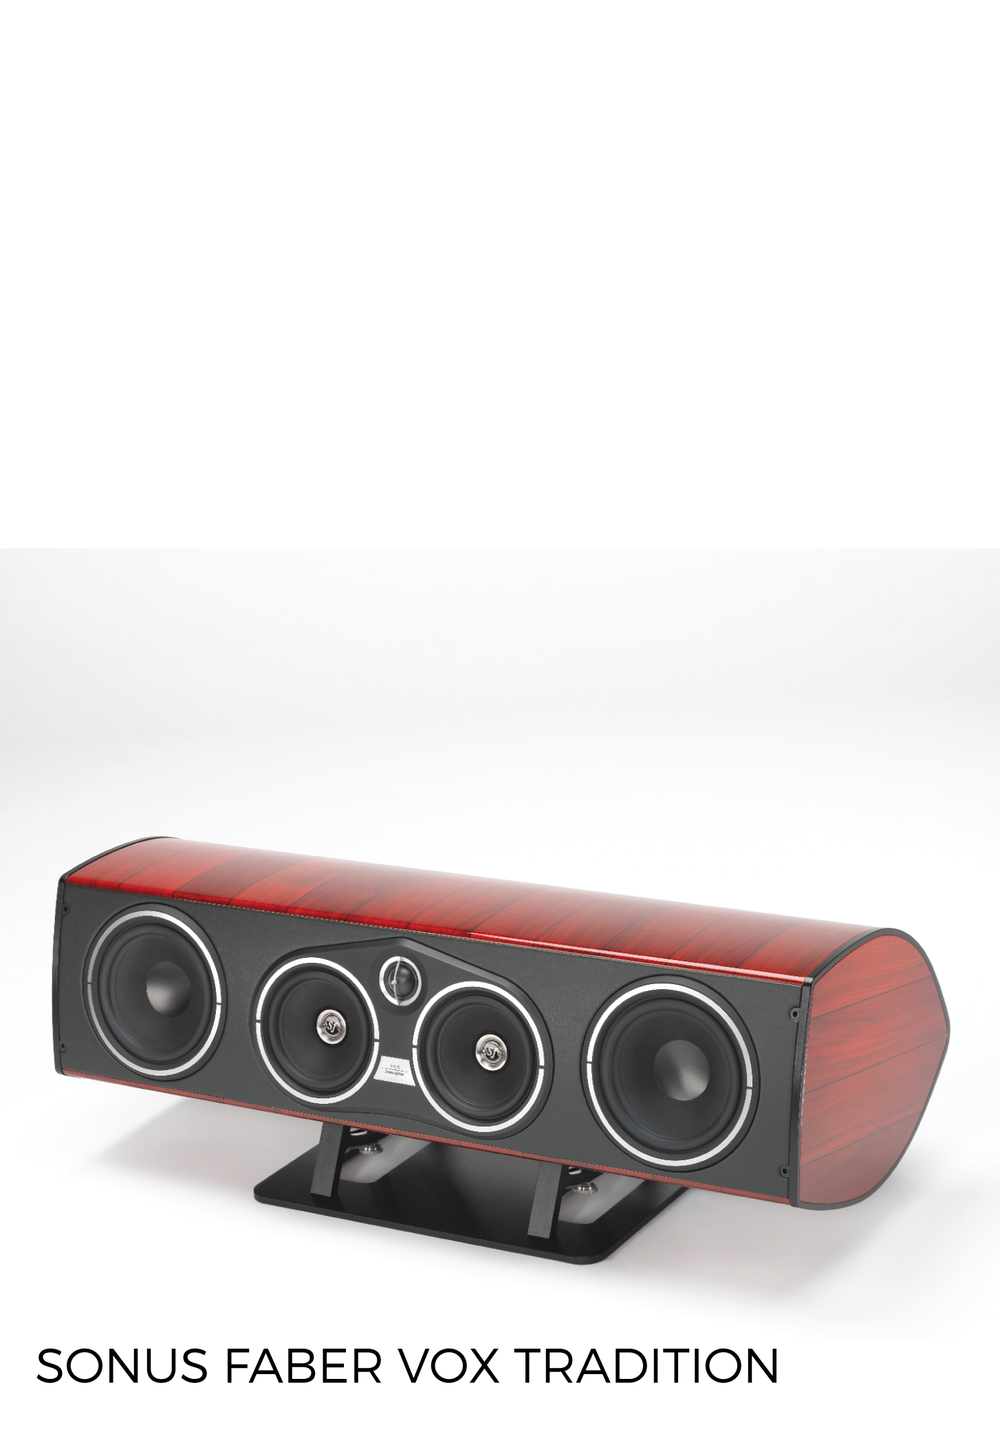 SONUS FABER VOX TRADITION DONG THANH - HOA PHUC